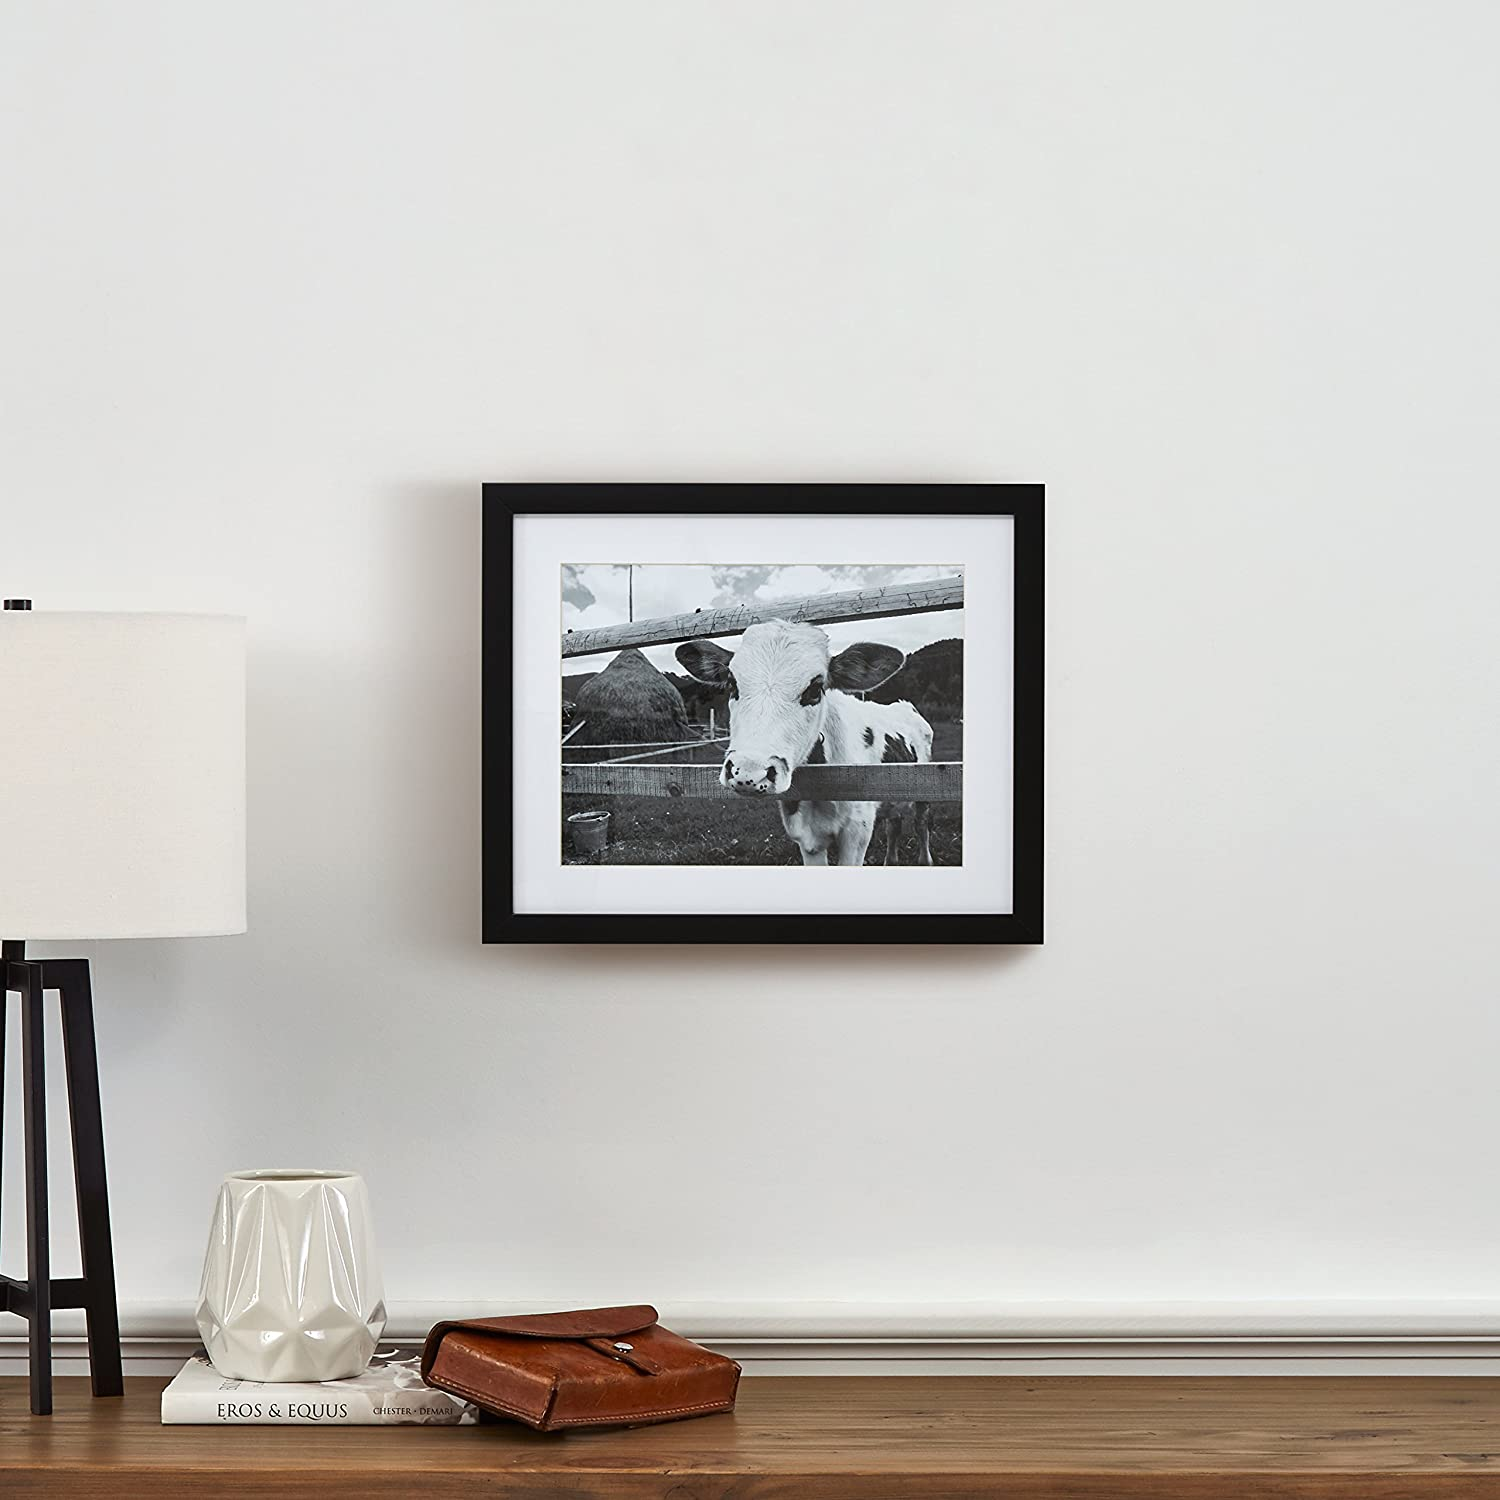 Amazoncom Black And White Curious Cow Photo Black Frame 18 X 22